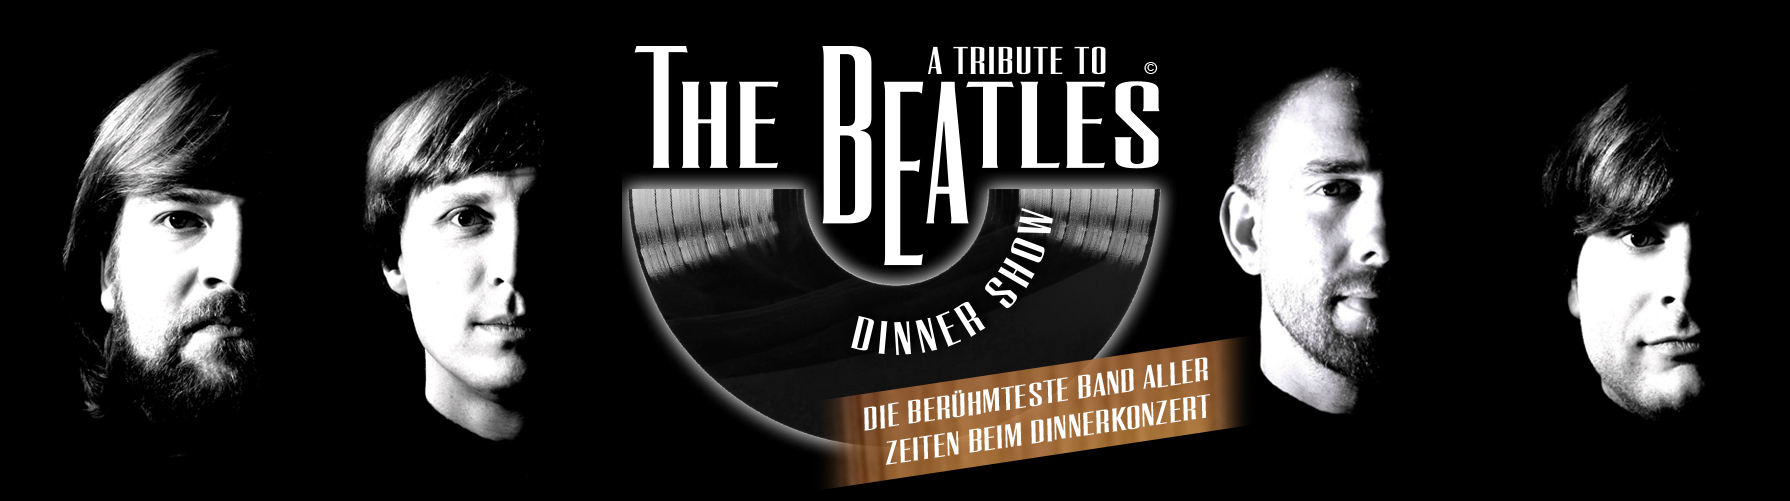 A Tribute to The Beatles Dinnershow mit The Beatles Connection